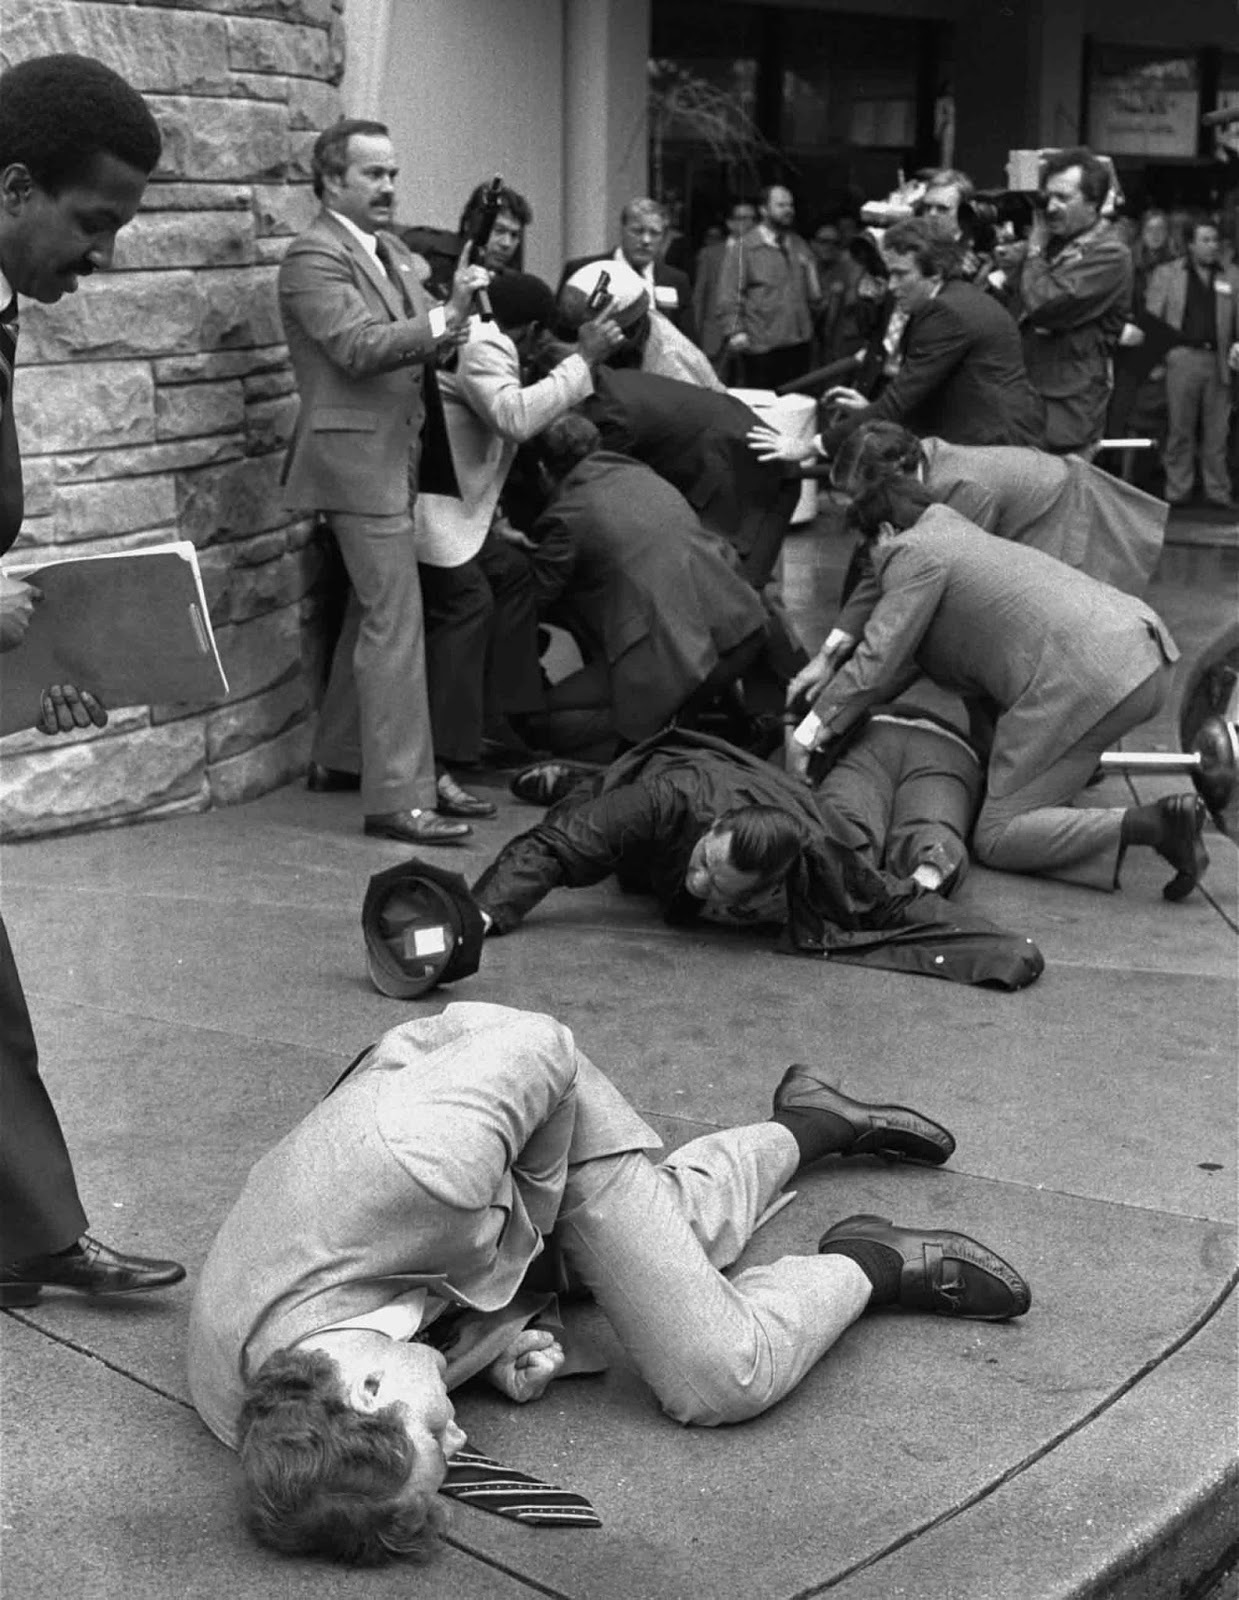 Secret Service agent clutching his stomach after being shot during the assassination attempt of President Ronald Reagan.